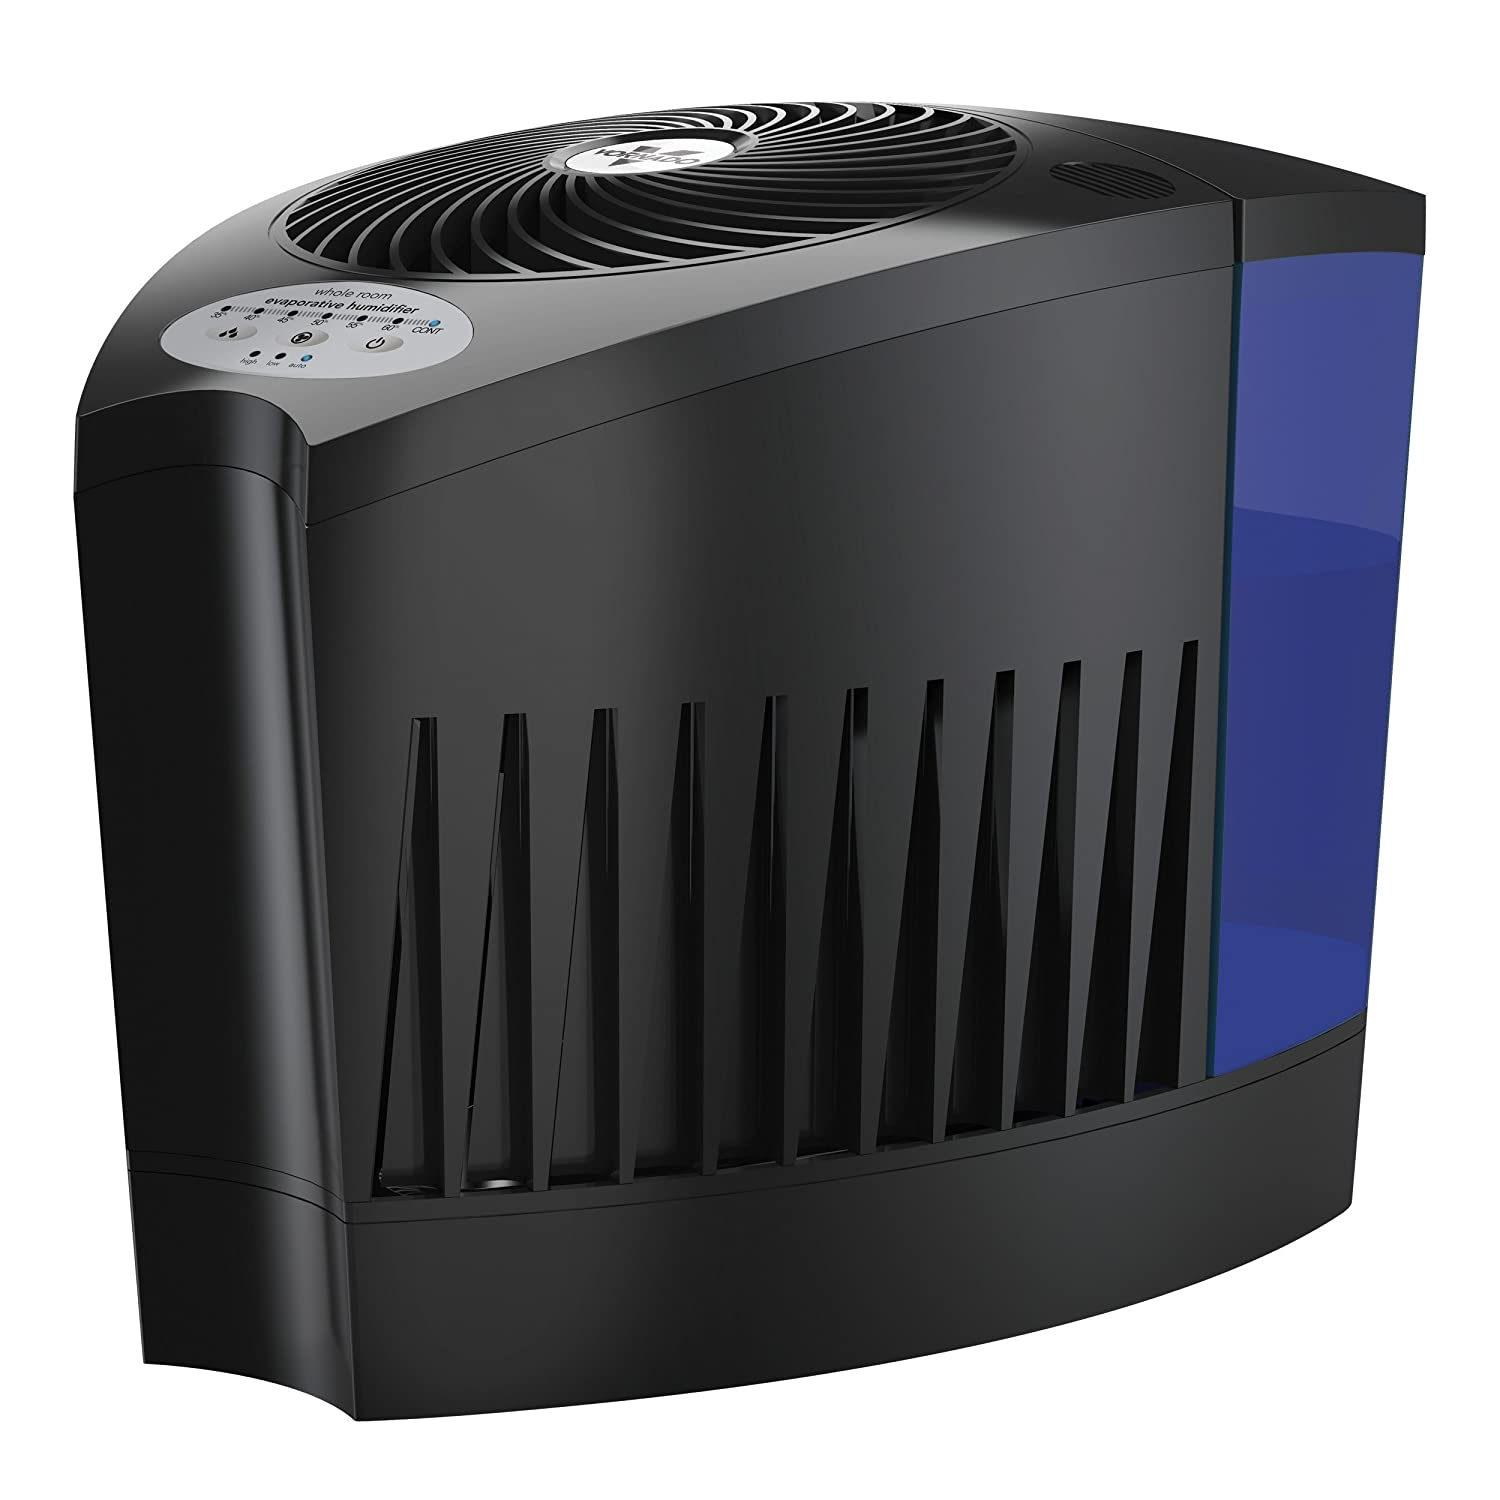 Vornado Evap3 Whole Room Evaporative Humidifier New Free Shipping #3C447D